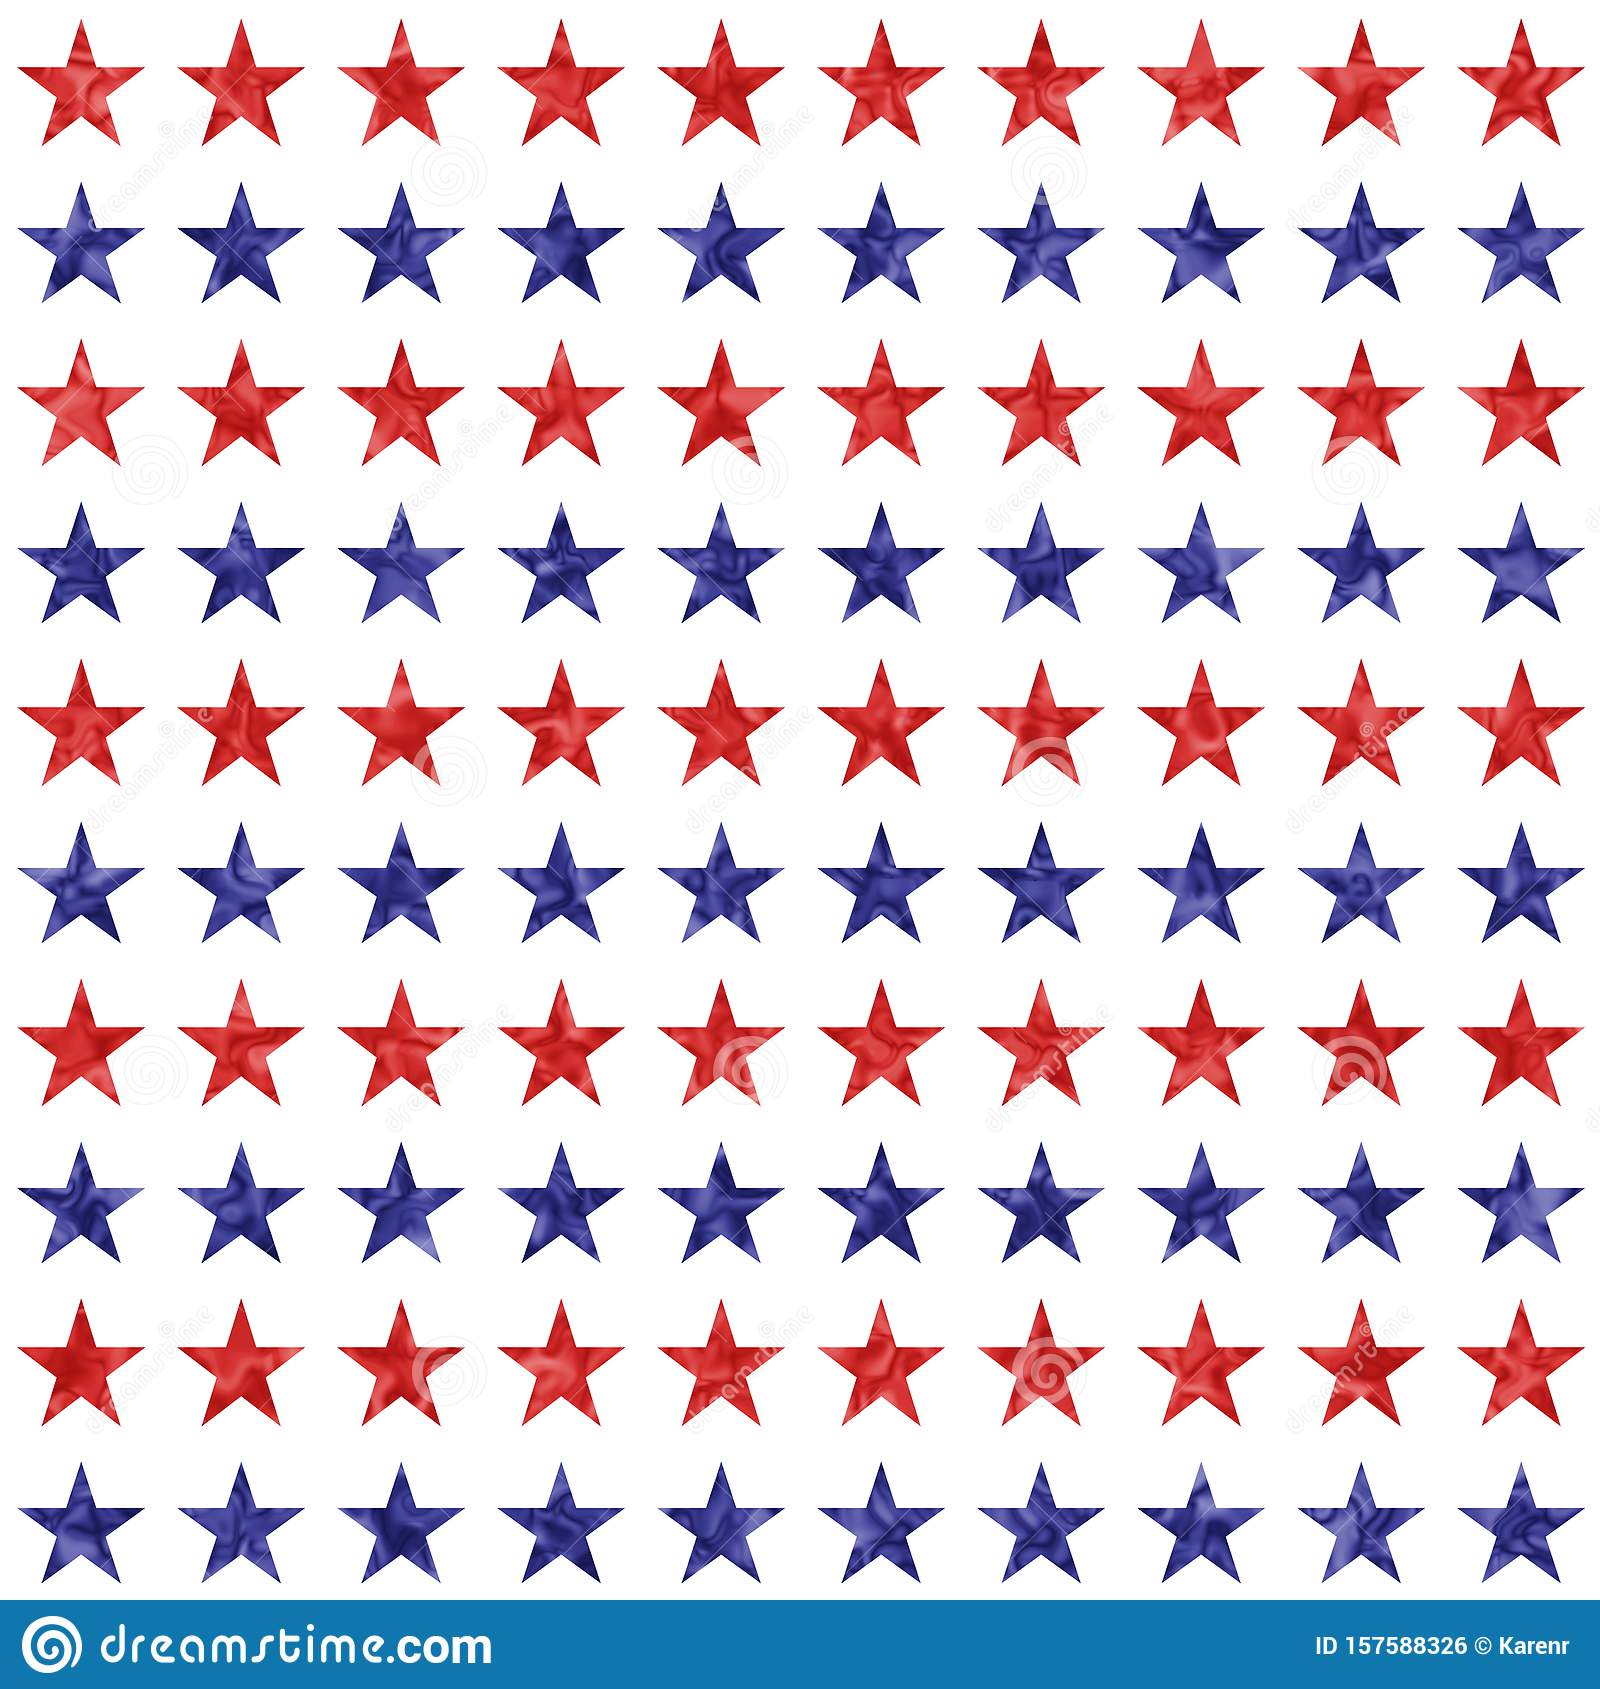 Red and blue star seamless textured pattern background